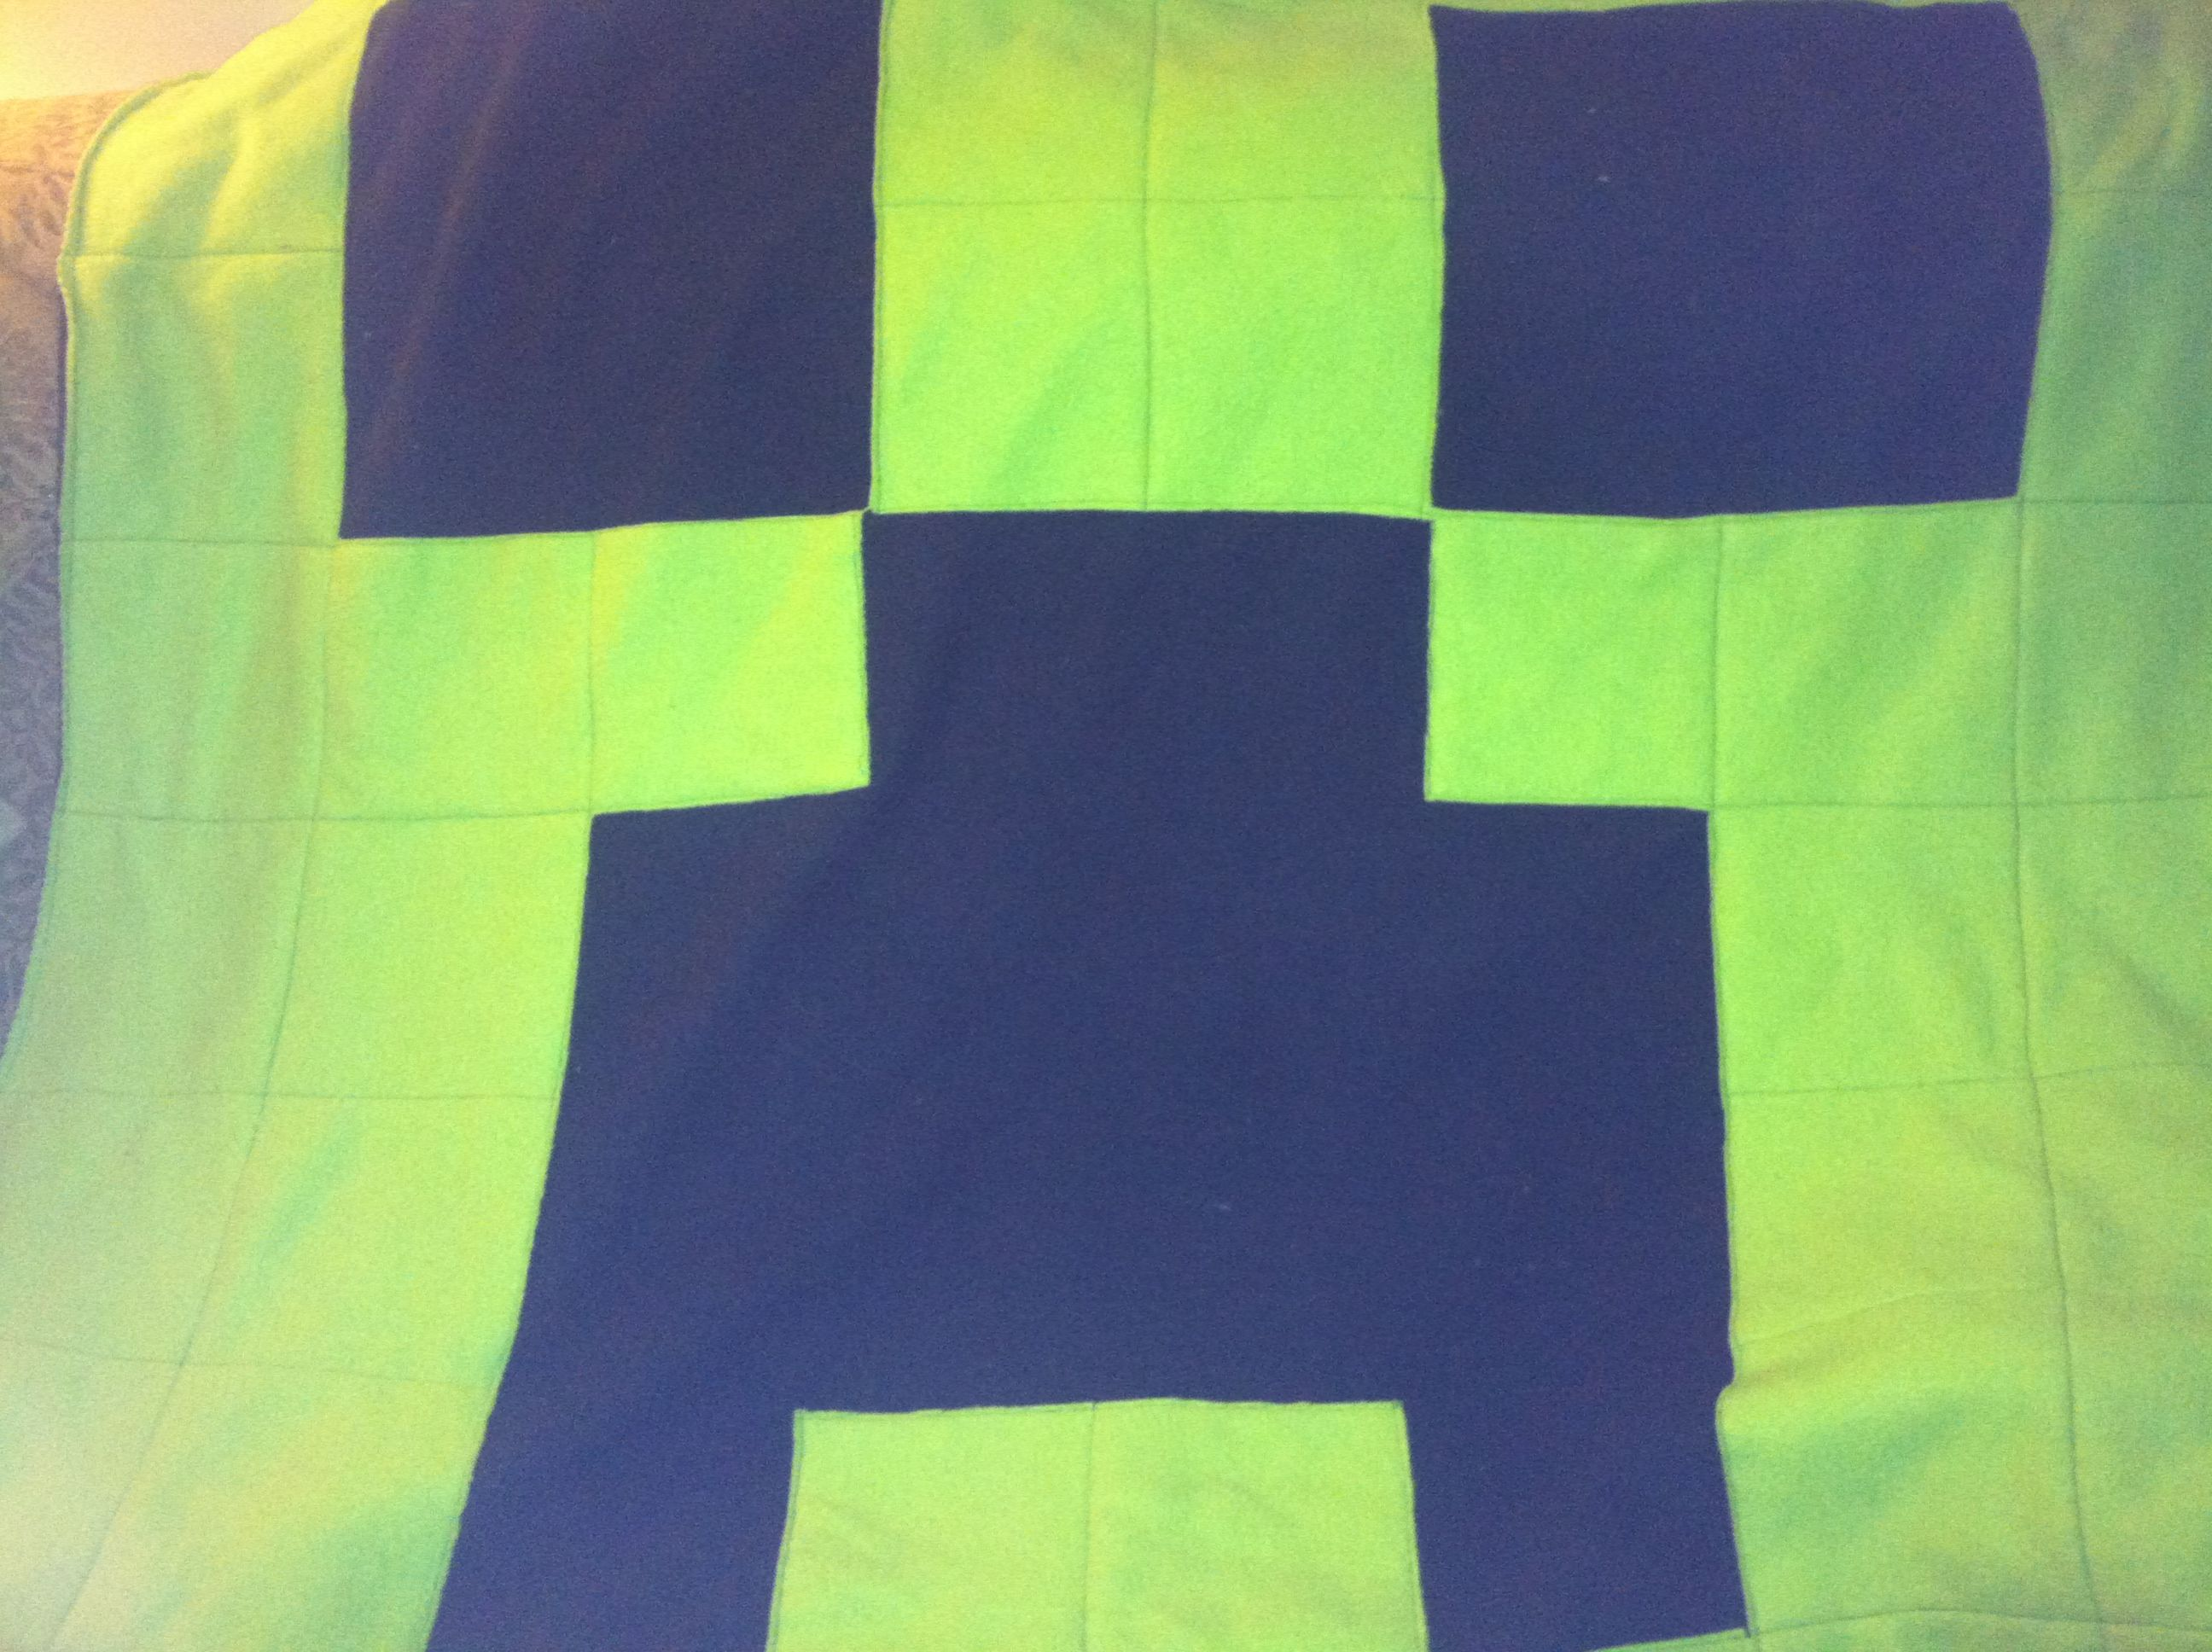 Minecraft Characters Faces Minecraft Creeper Fleece Blanket Black Back With Green